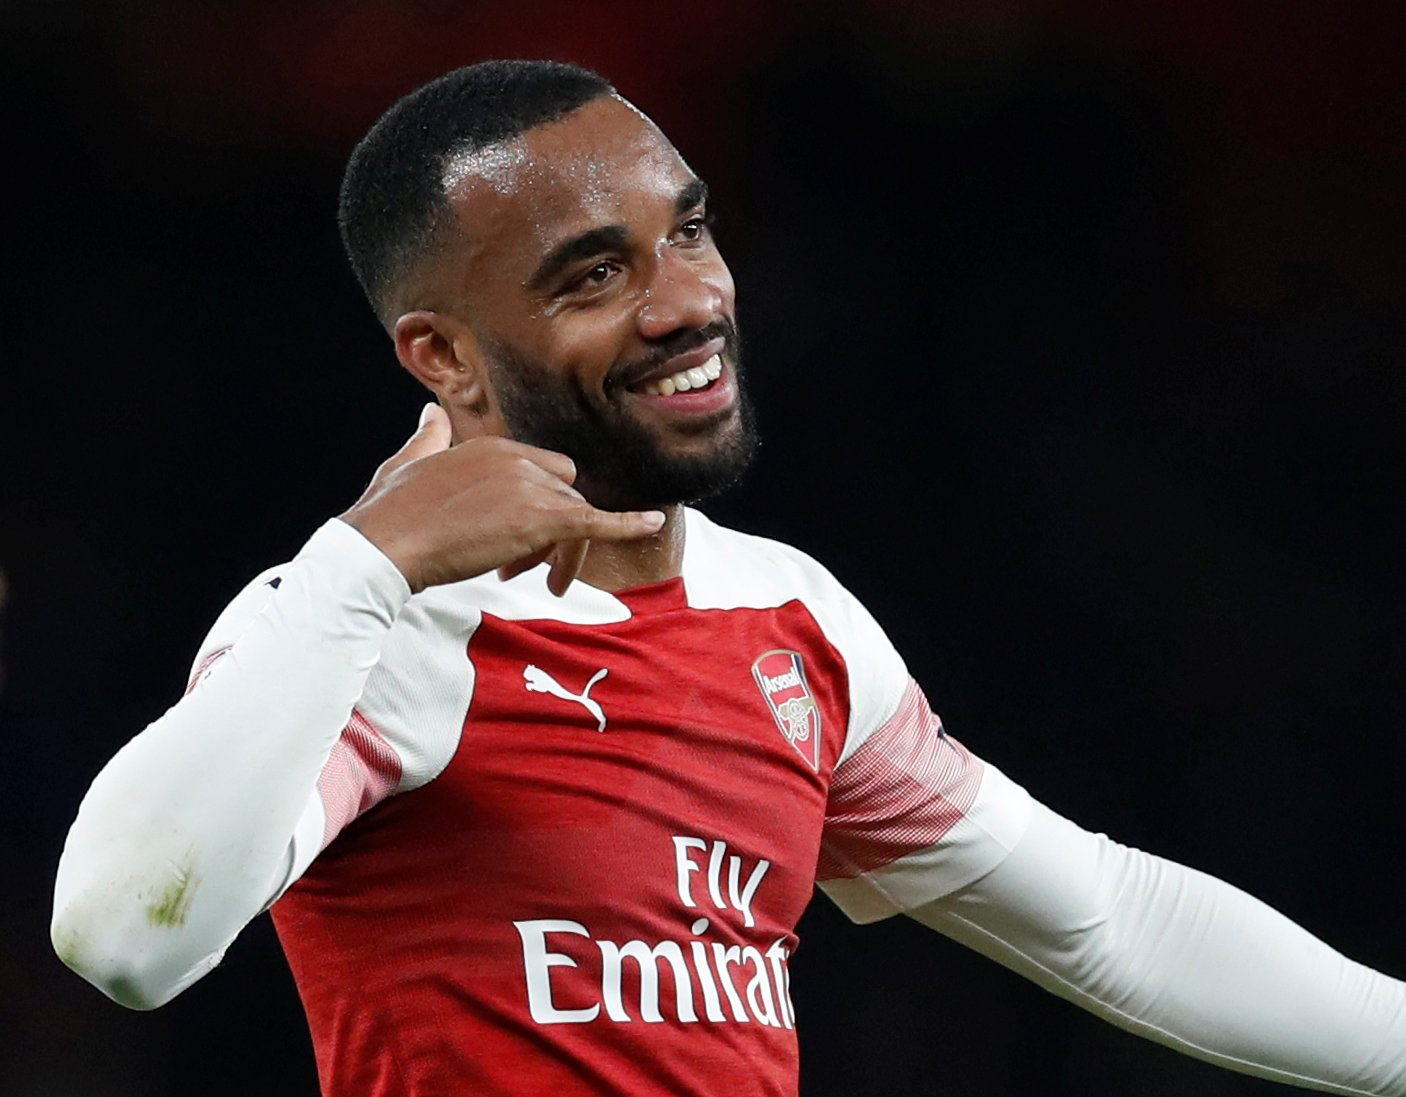 Arsenal: Alexandre Lacazette is quietly becoming Arsenal's best player